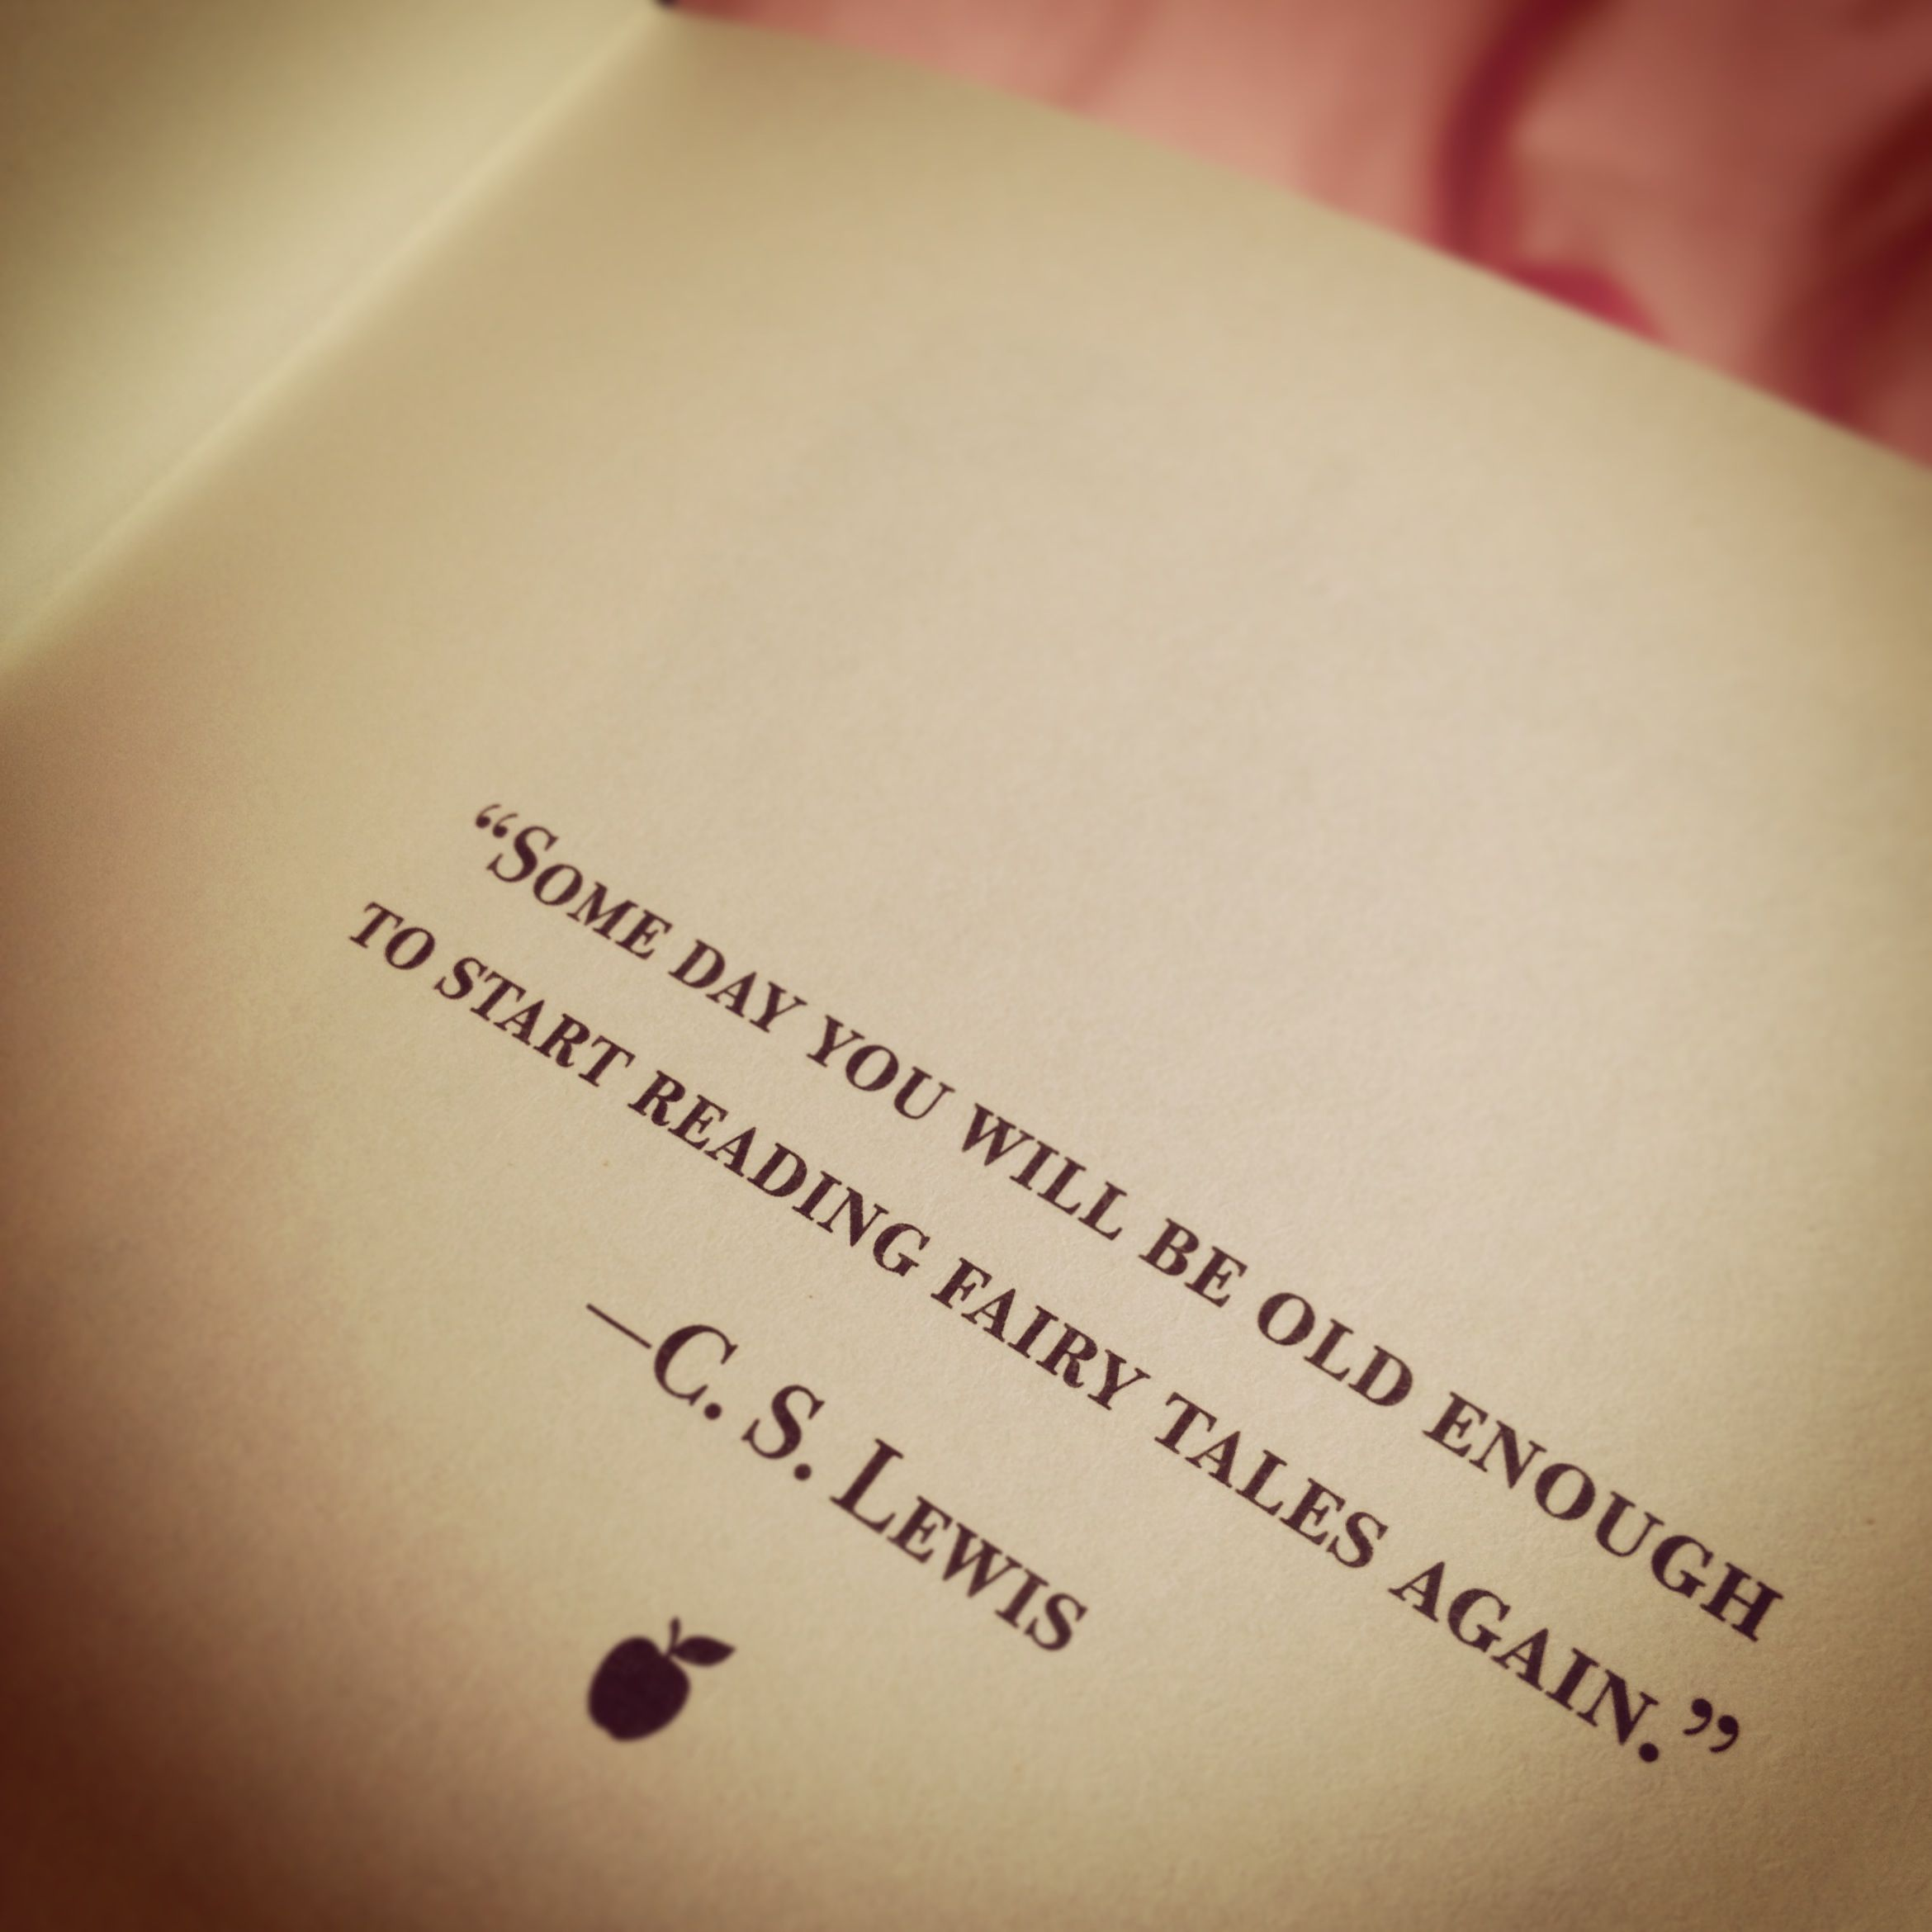 C. S. Lewis Quote in The Land Of Stories by Chris Colfer. ---What made my day when opening the book!